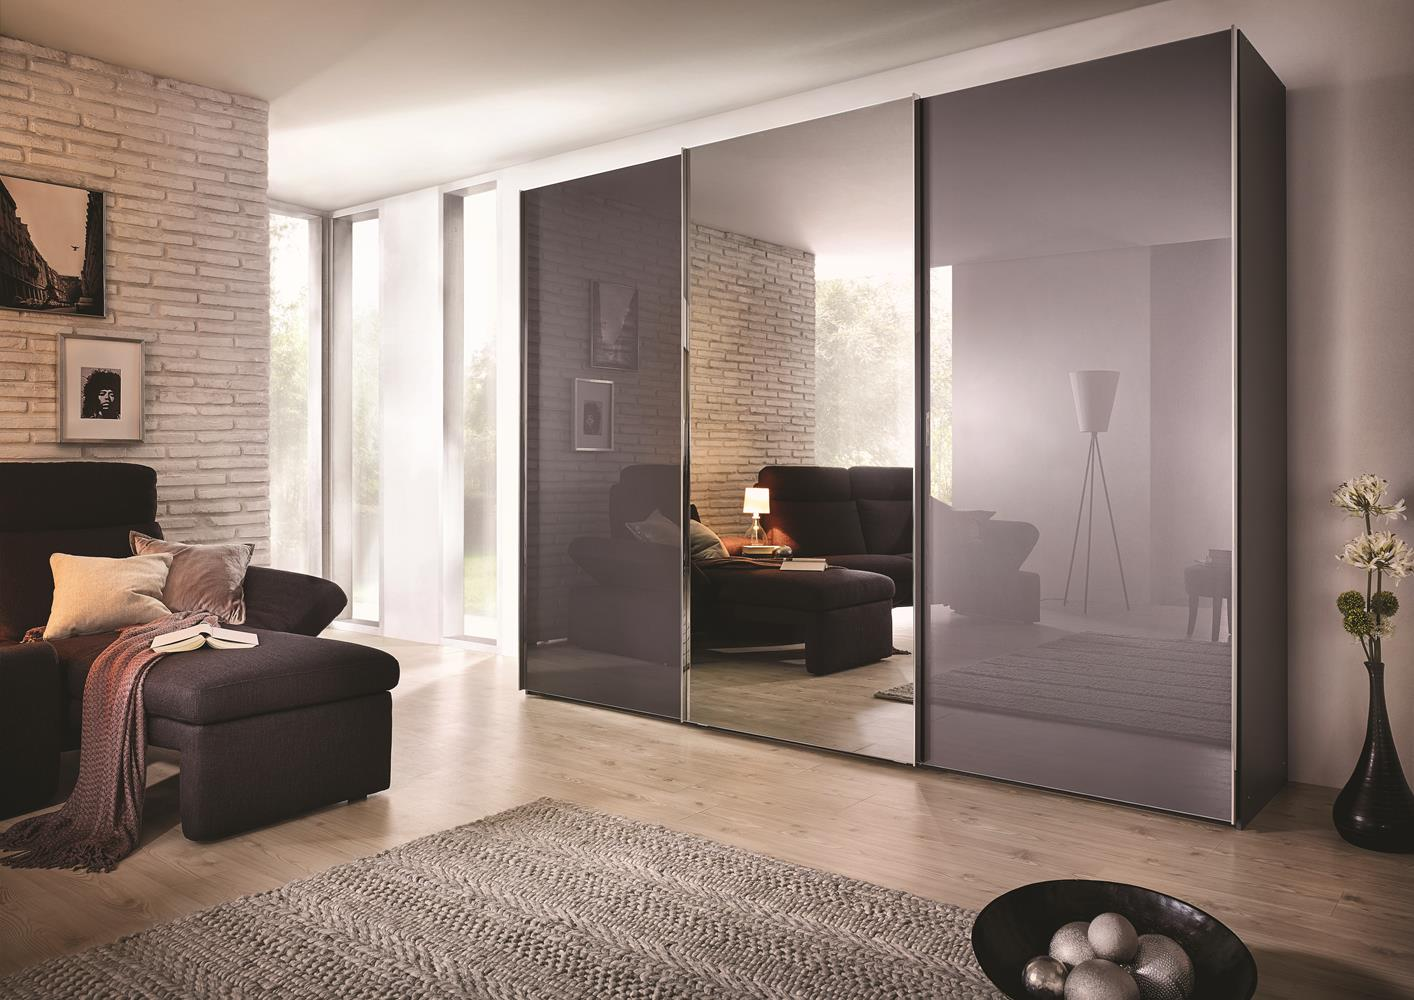 acheter votre dressing 3 portes coulissantes avec miroir. Black Bedroom Furniture Sets. Home Design Ideas